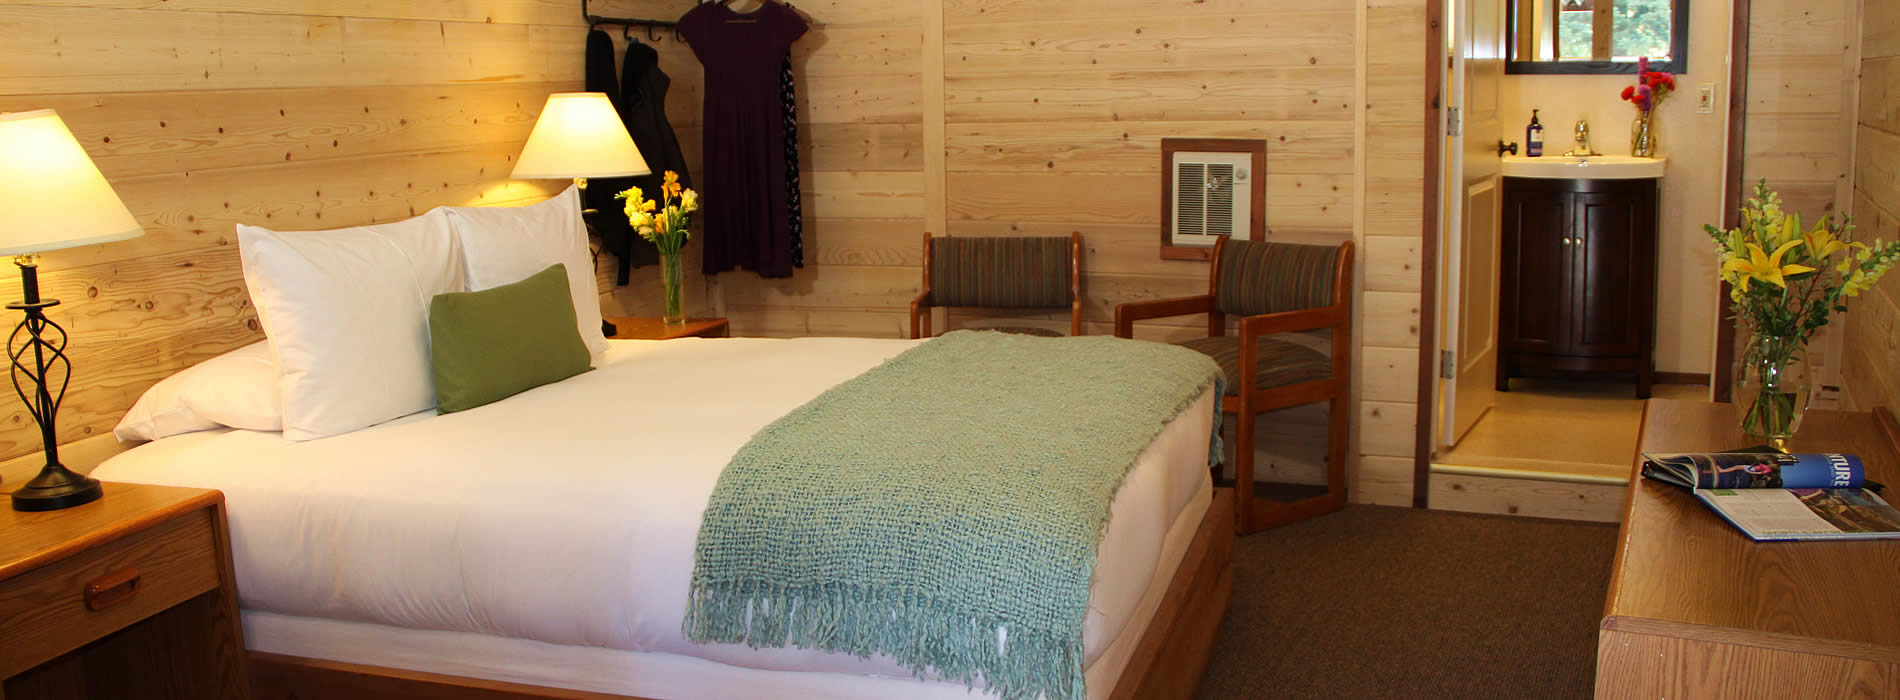 big-sur-river-inn-big-sur-california-guest-room